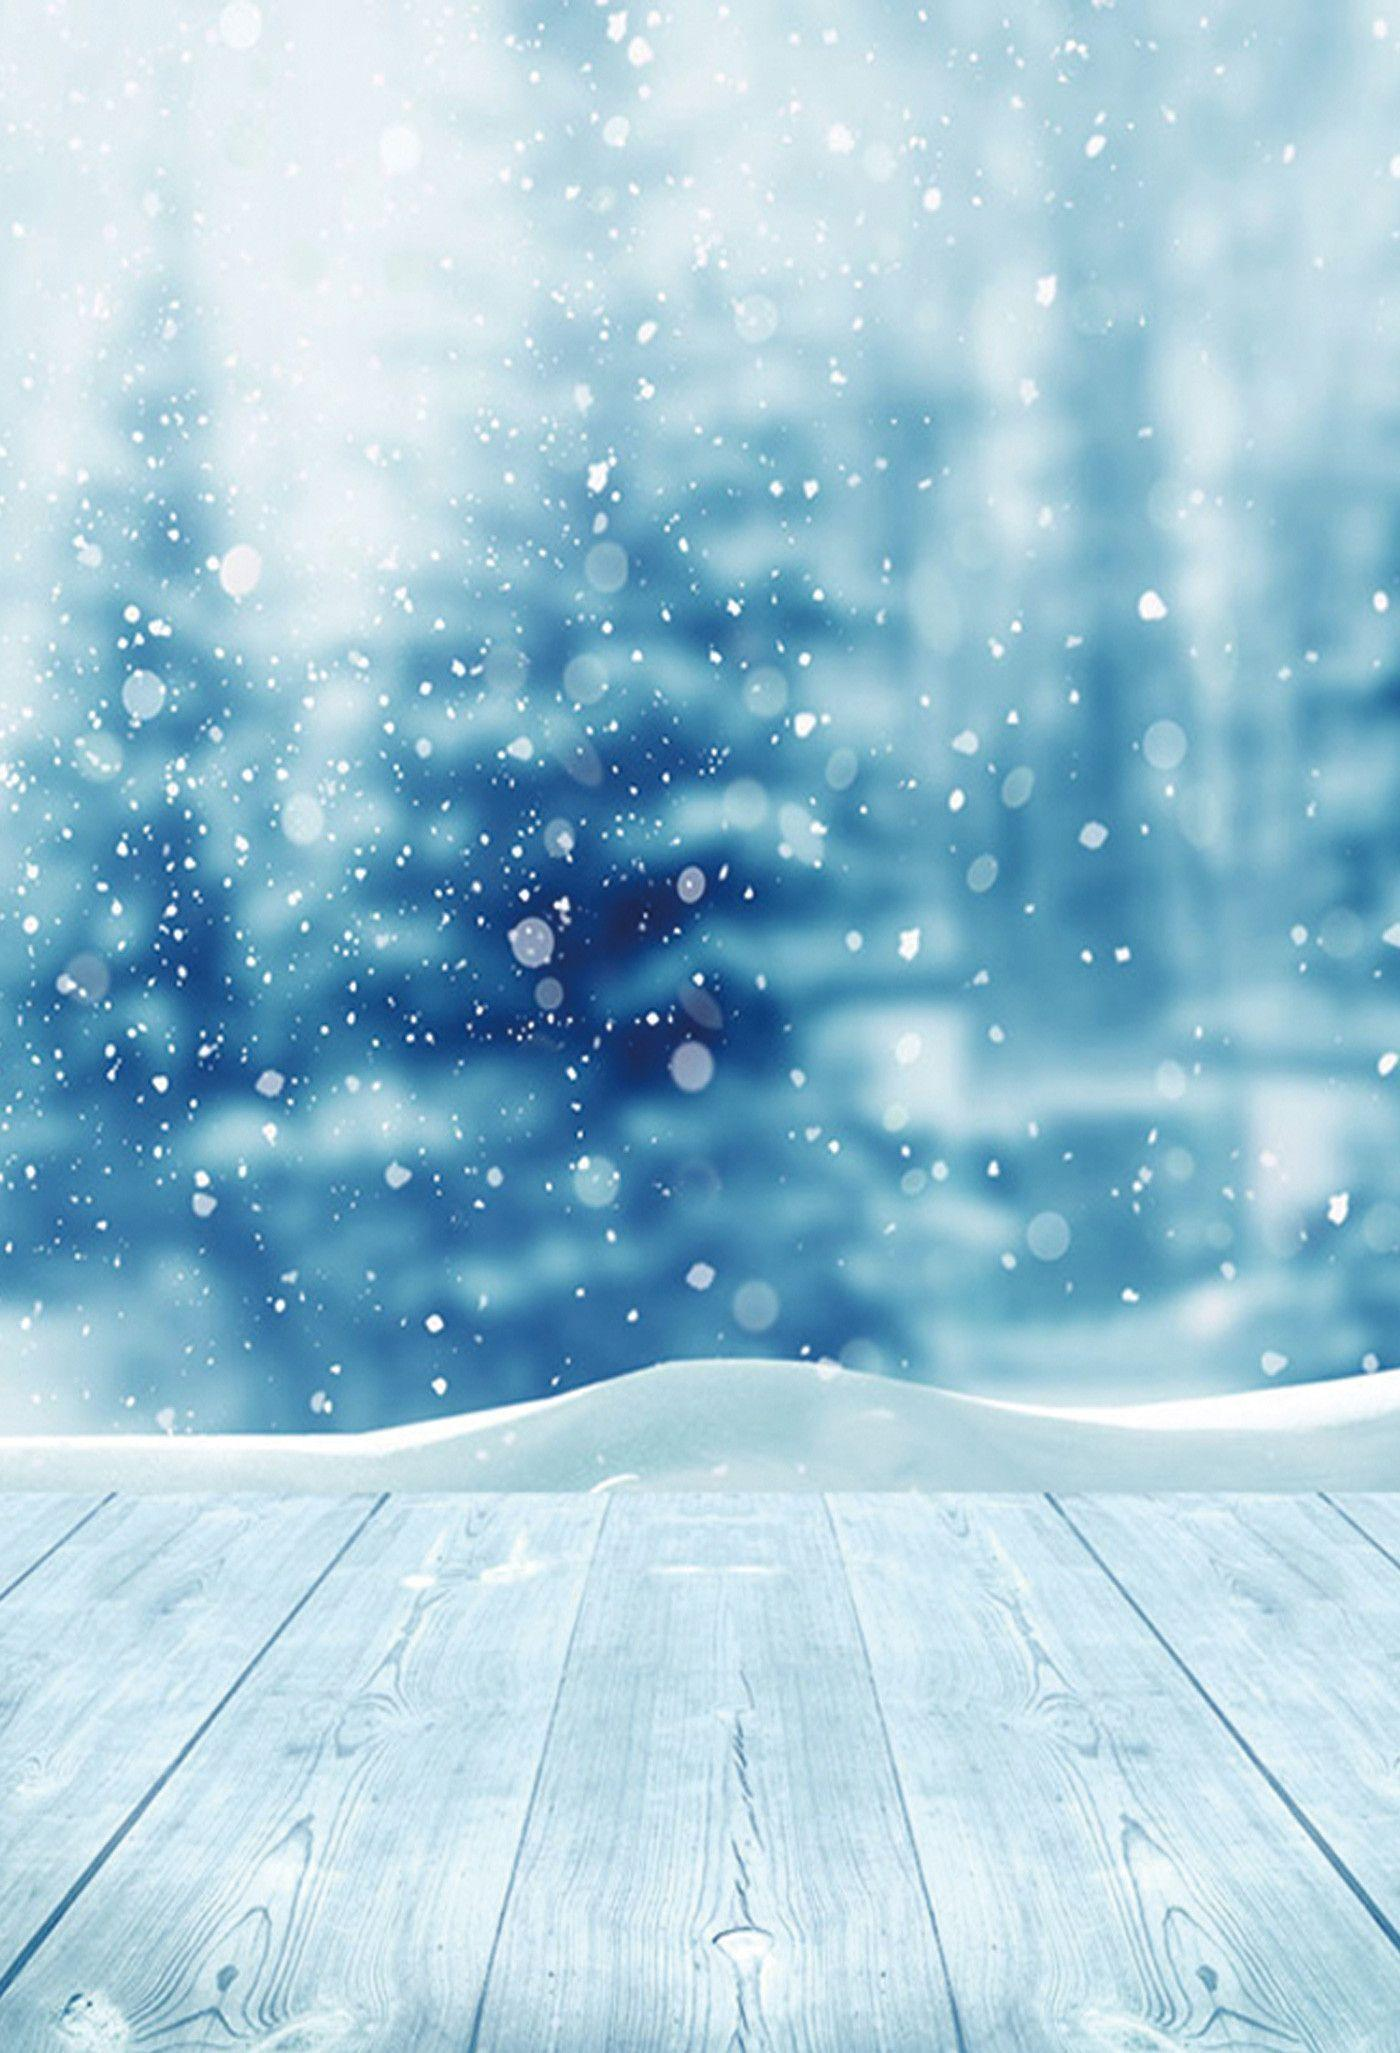 Season Backdrop Winter Backgrounds Snowflake Backdrop Blue Floor